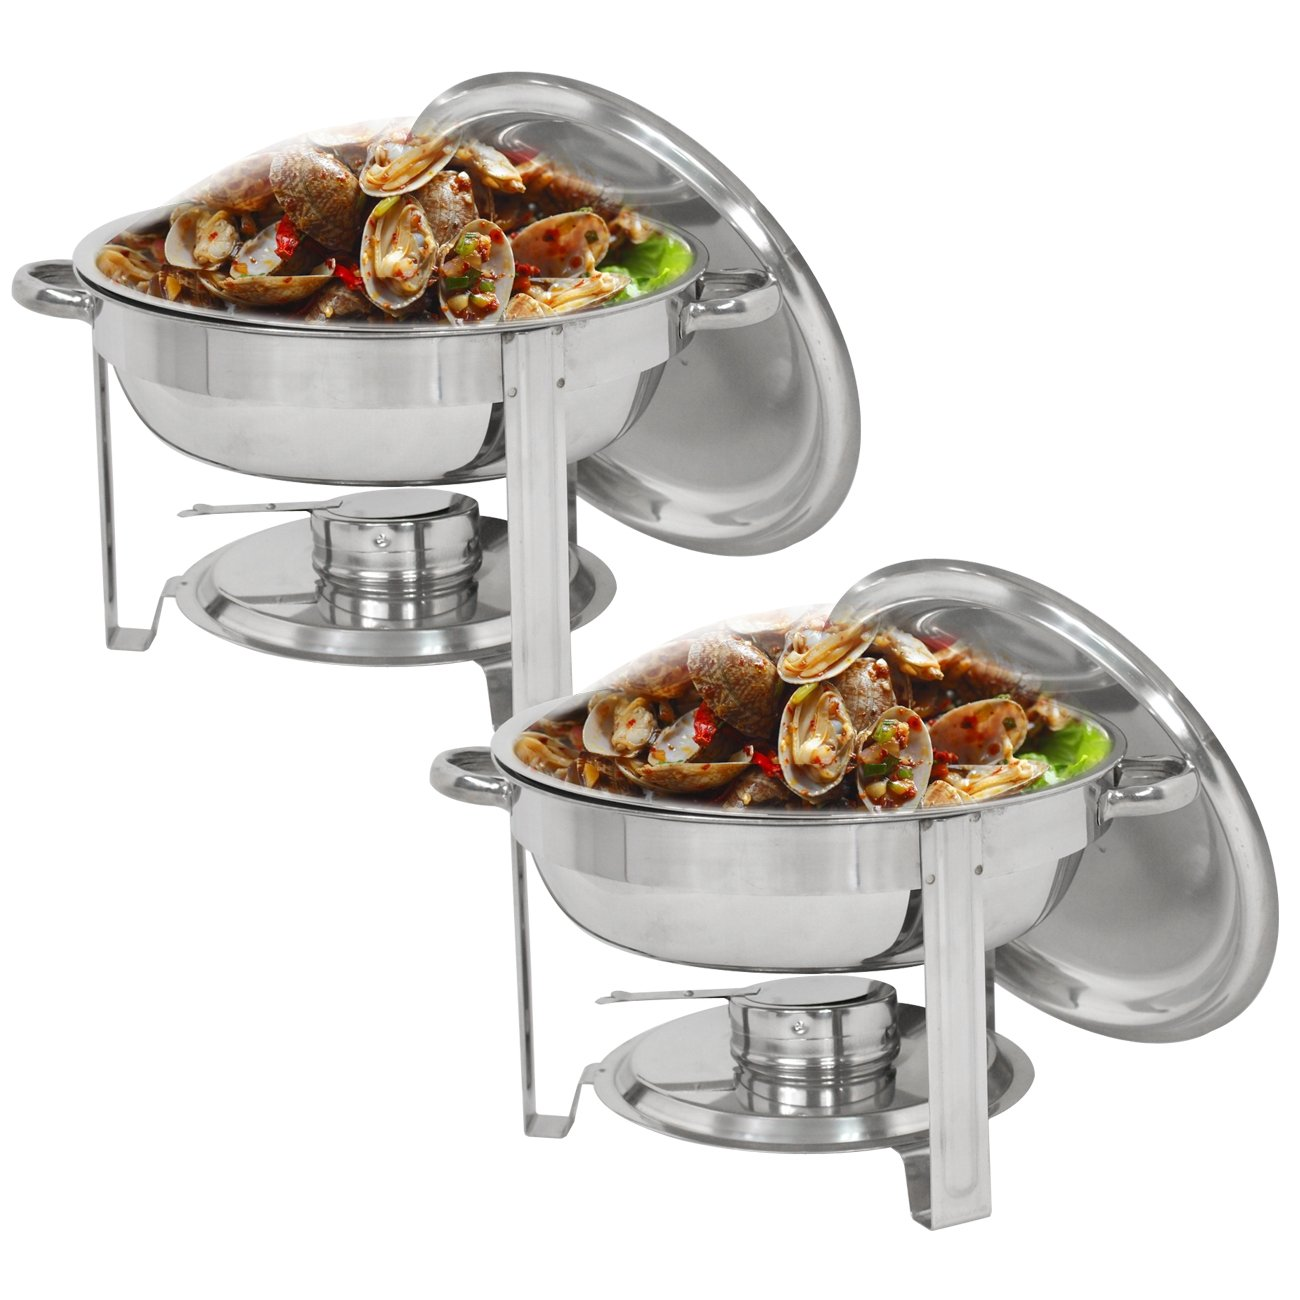 Super Deal Pack of 2 Round Chafing Dish 5 Quart Stainless Steel Full Size Tray Buffet Catering, Dinner Serving Buffer Warmer Set (2)